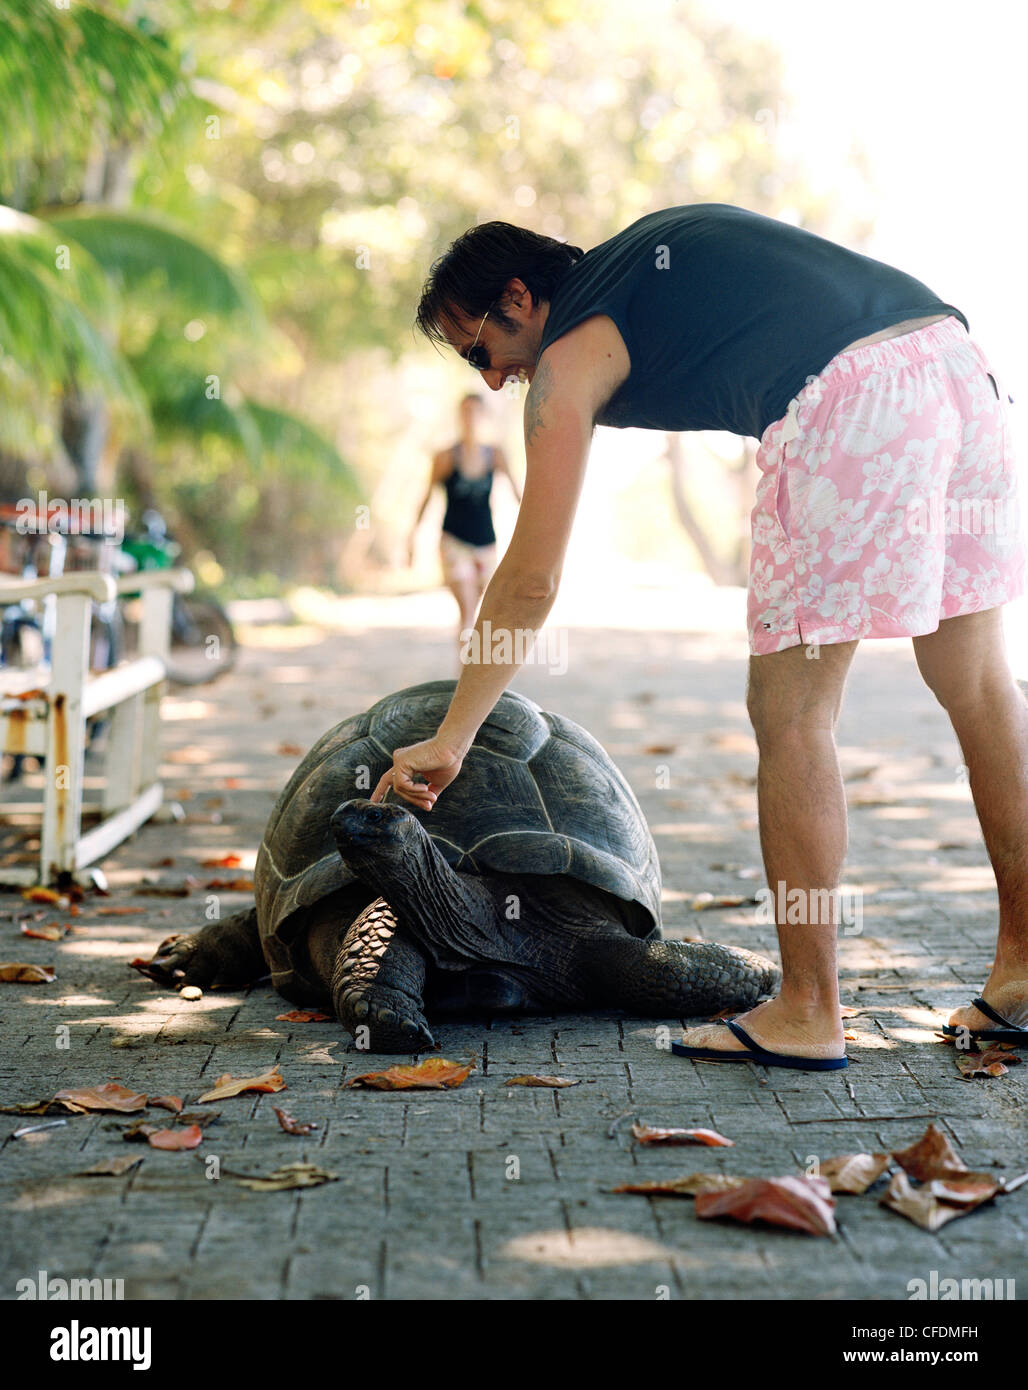 Tourist petting 28 year old turtle on the promenade at Anse Banane, eastern La Digue, La Digue and Inner Islands, - Stock Image